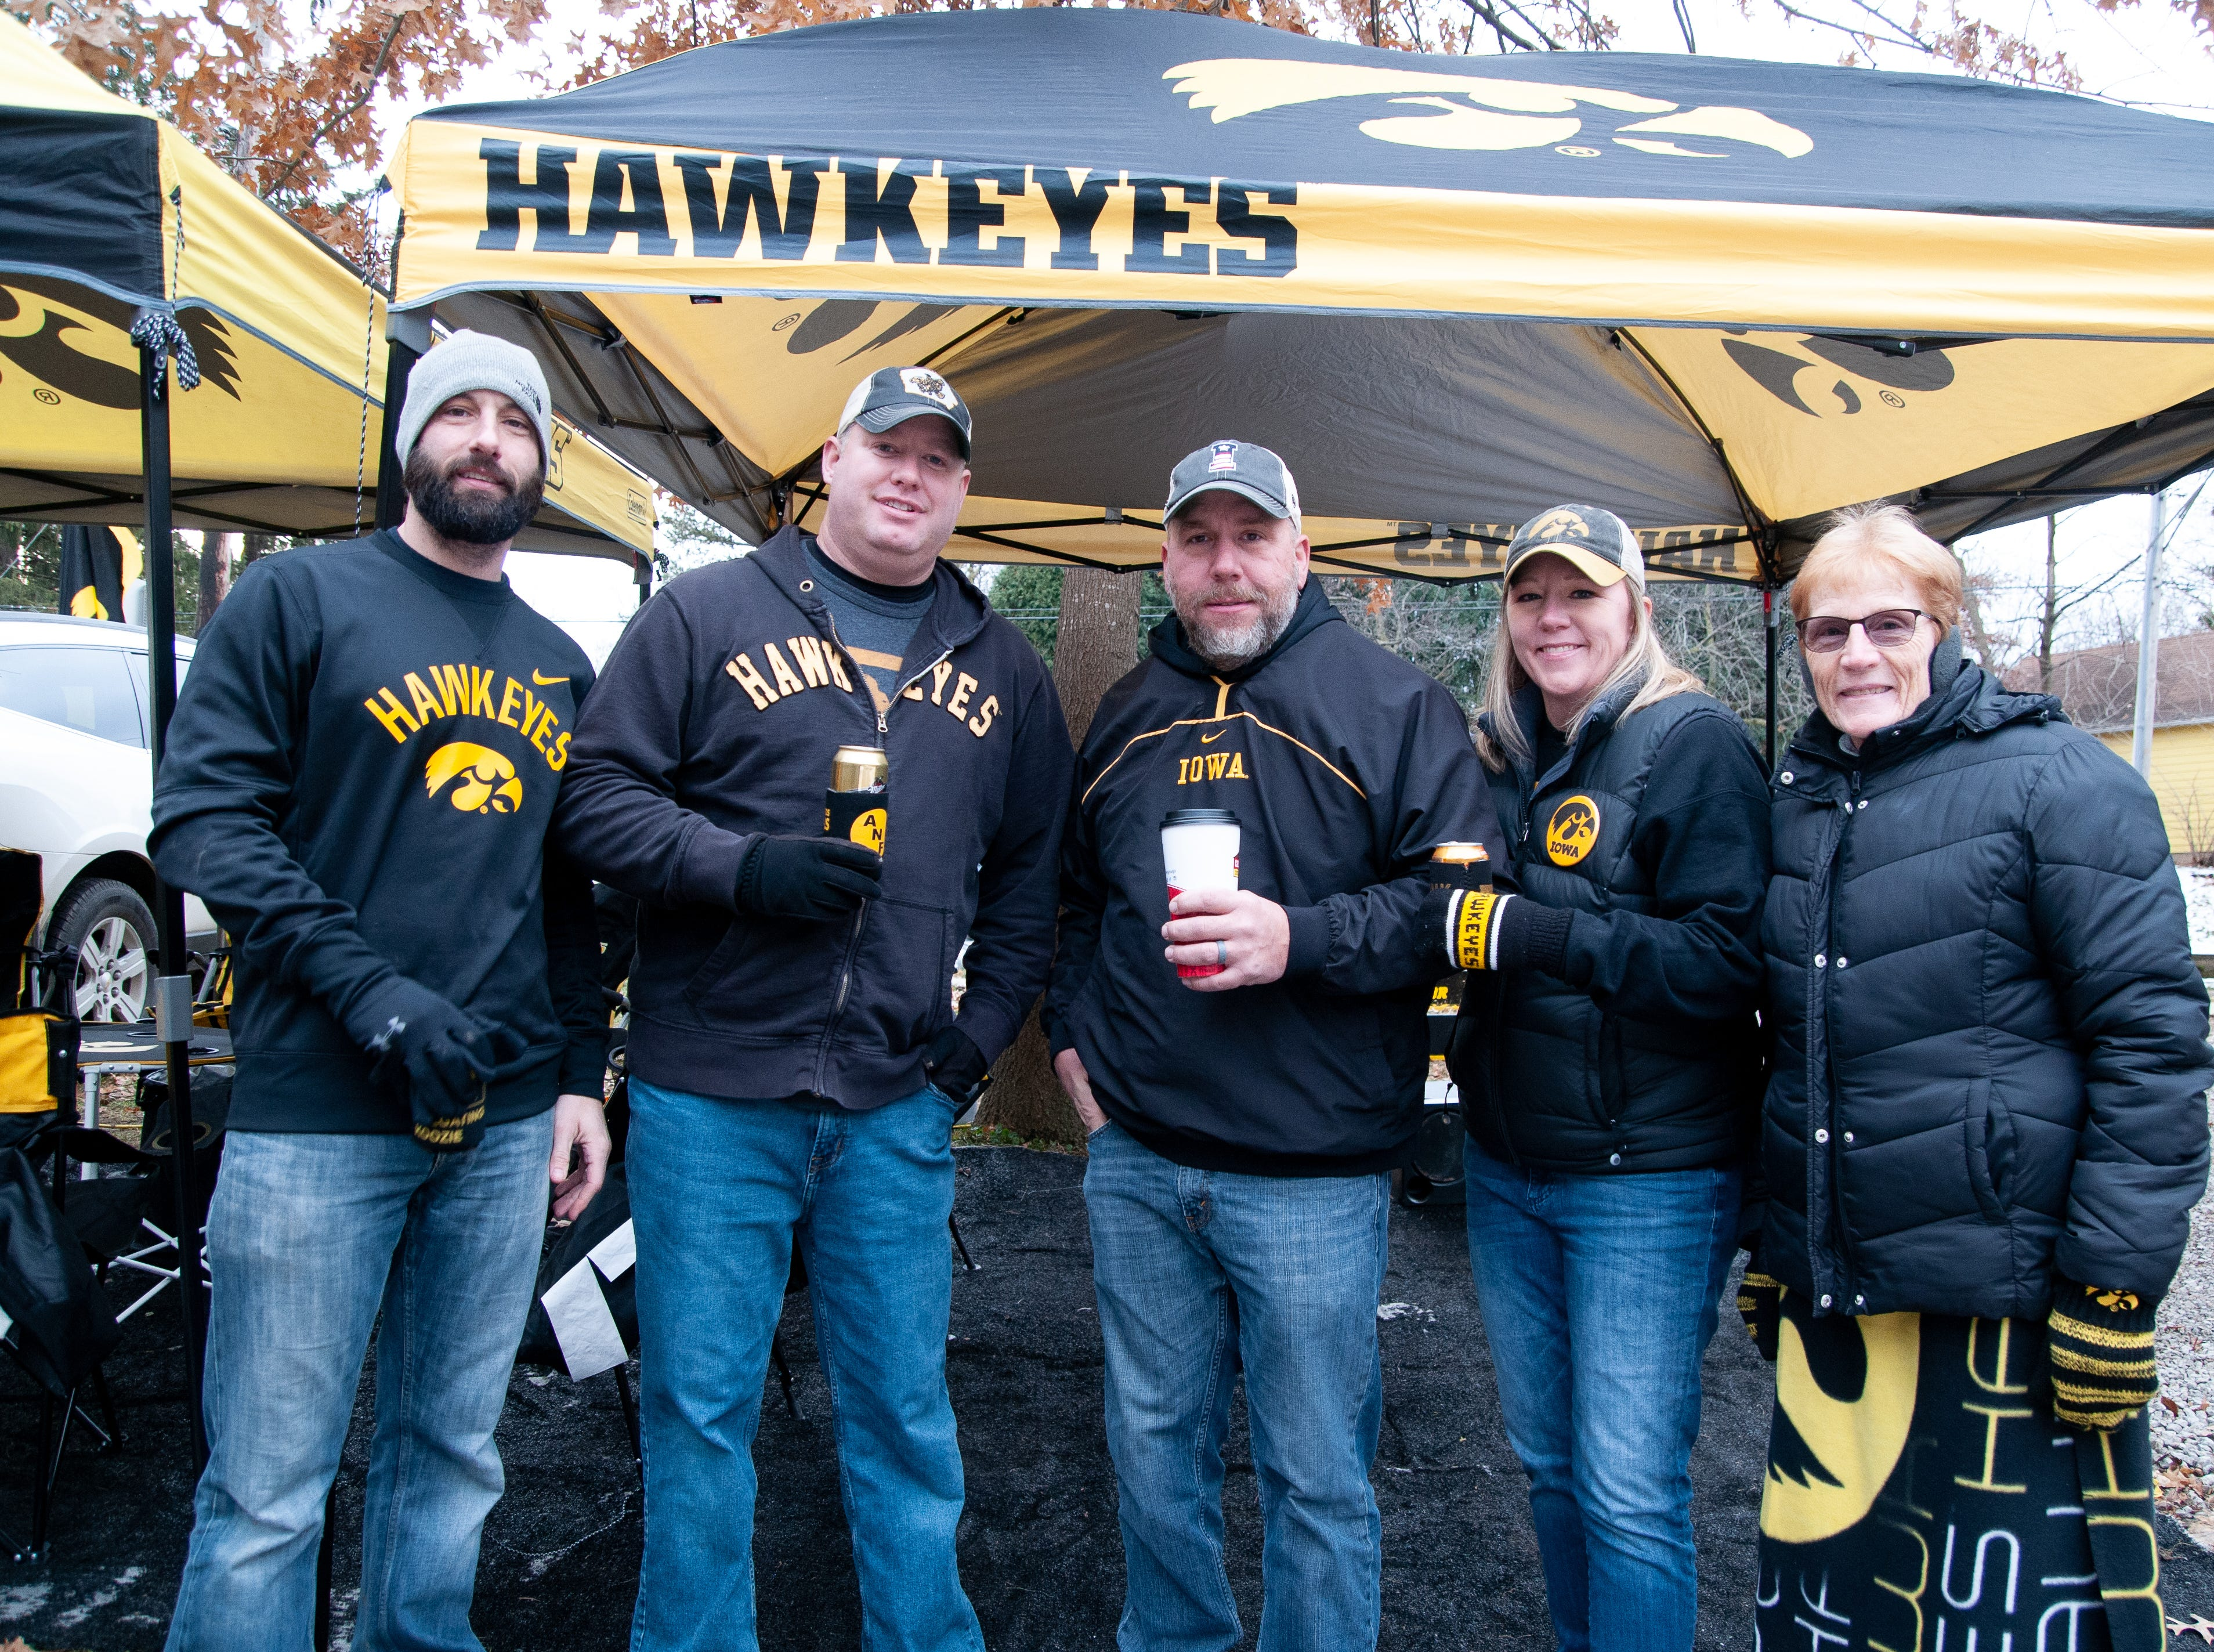 The 1122 Melrose Tailgate, of Boone, Grinnell and Des Moines, Friday, Nov. 23, 2018, while tailgating before the Iowa game against Nebraska in Iowa City.